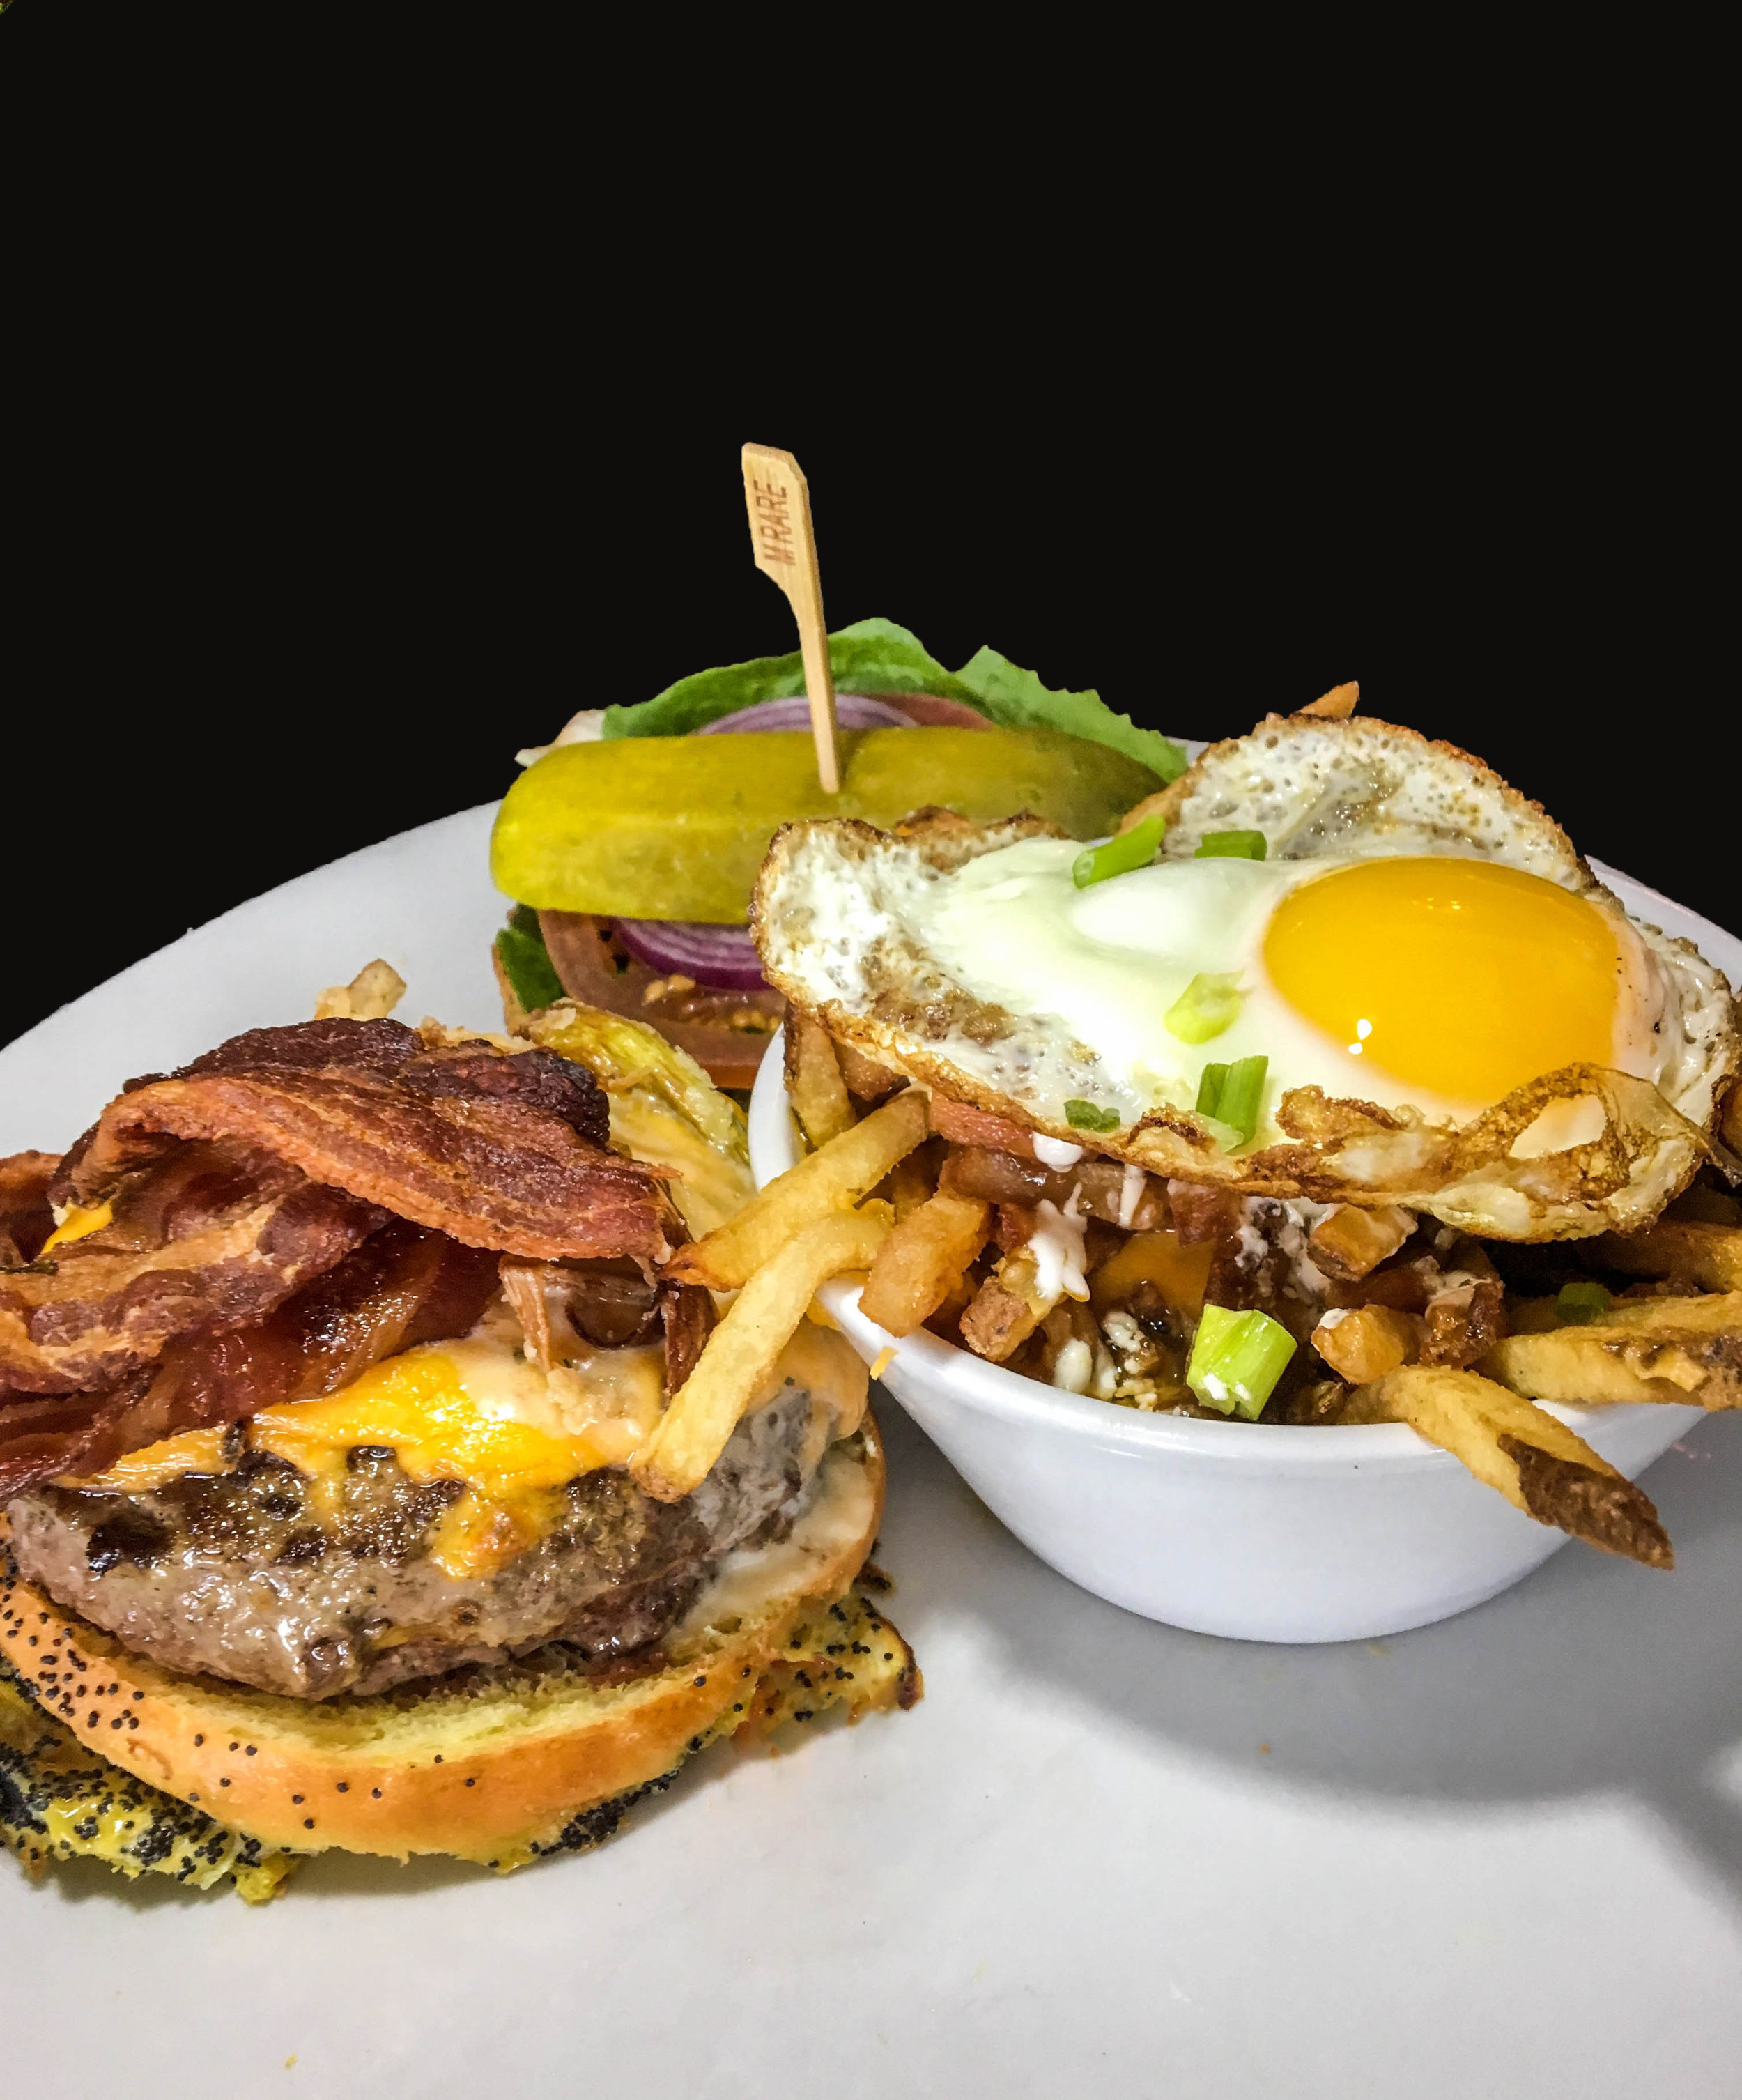 Redemption Burger - Ground short rib & brisket, applewood bacon, smoked cheddar, crispy shallots, redemption bourbon sauce, on a poppy-onion roll.  Side order of BrewFrites - Hand cut fries, hickory-smoked cheddar, beer braised pork belly, fried egg, gravy and crème fraiche.